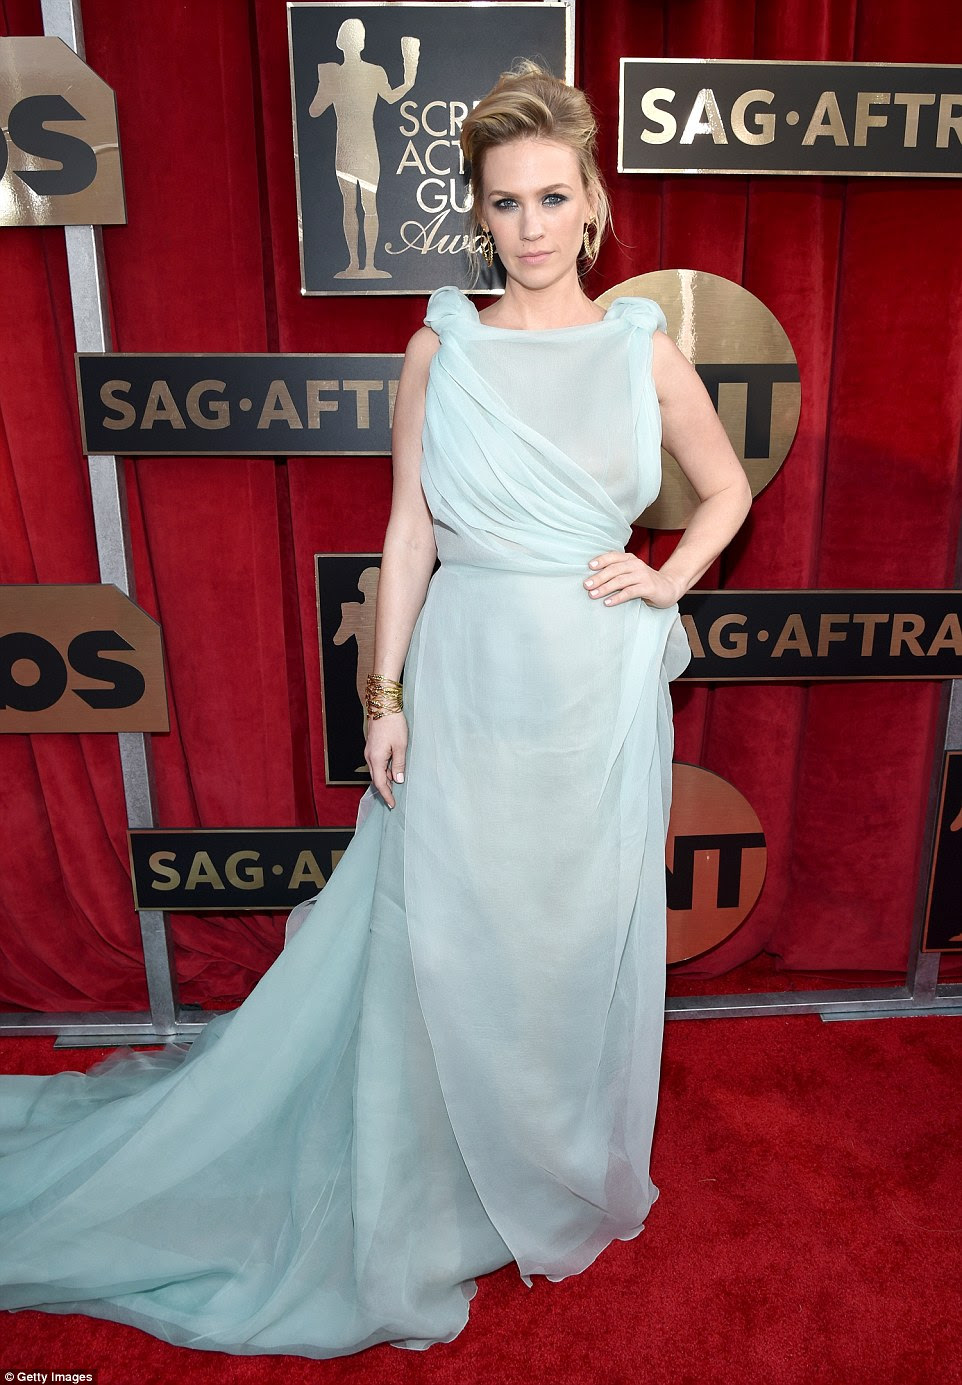 Unflattering: Another shock appearance on the list of worst-dressed stars is January Jones, who arrived at the award ceremony in this sea-foam green chiffon dress